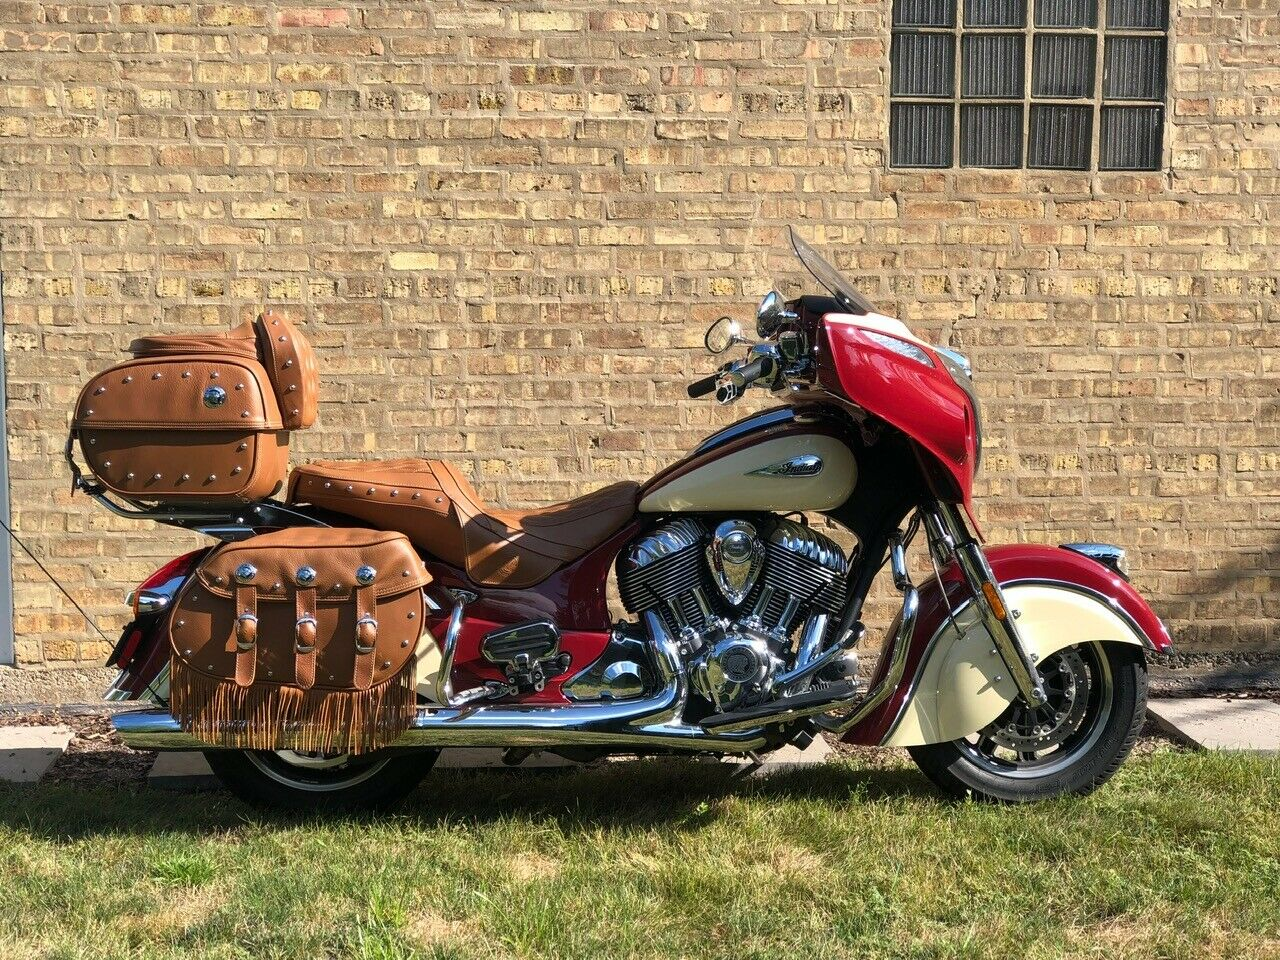 2017 Indian ROADMASTER  Indian Roadmaster Classic Motorcycle Red over Ivory Cream (28K new)